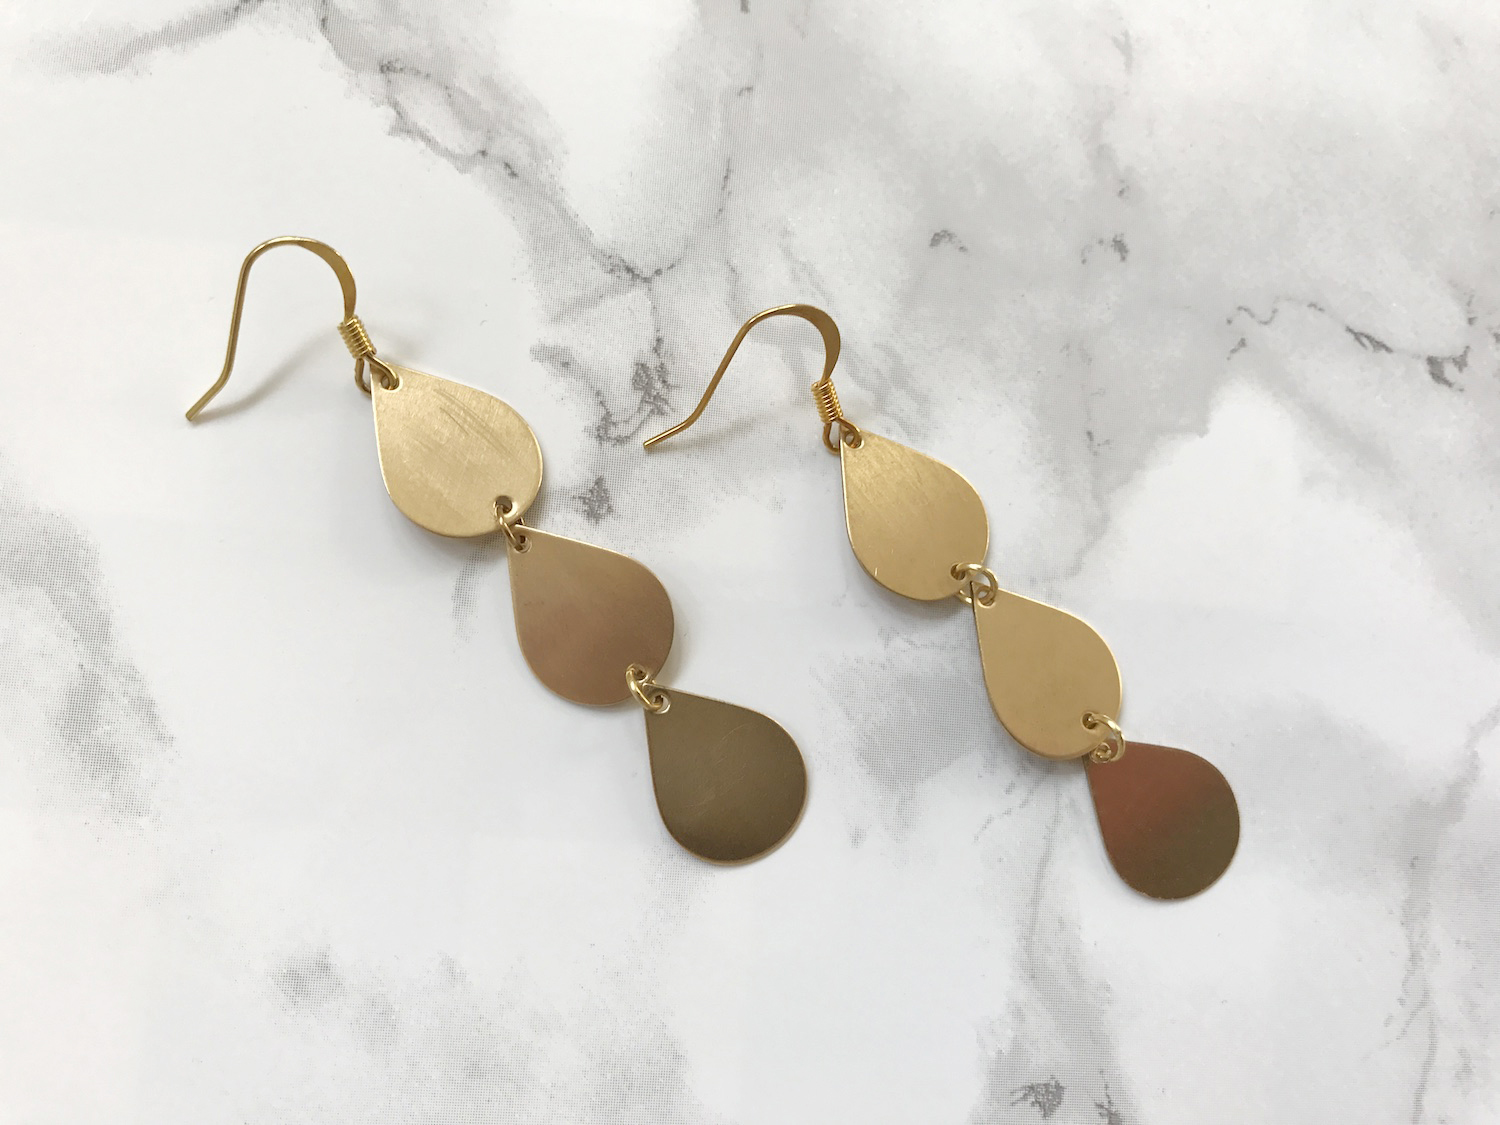 Handmade minimalist jewelry wholesale